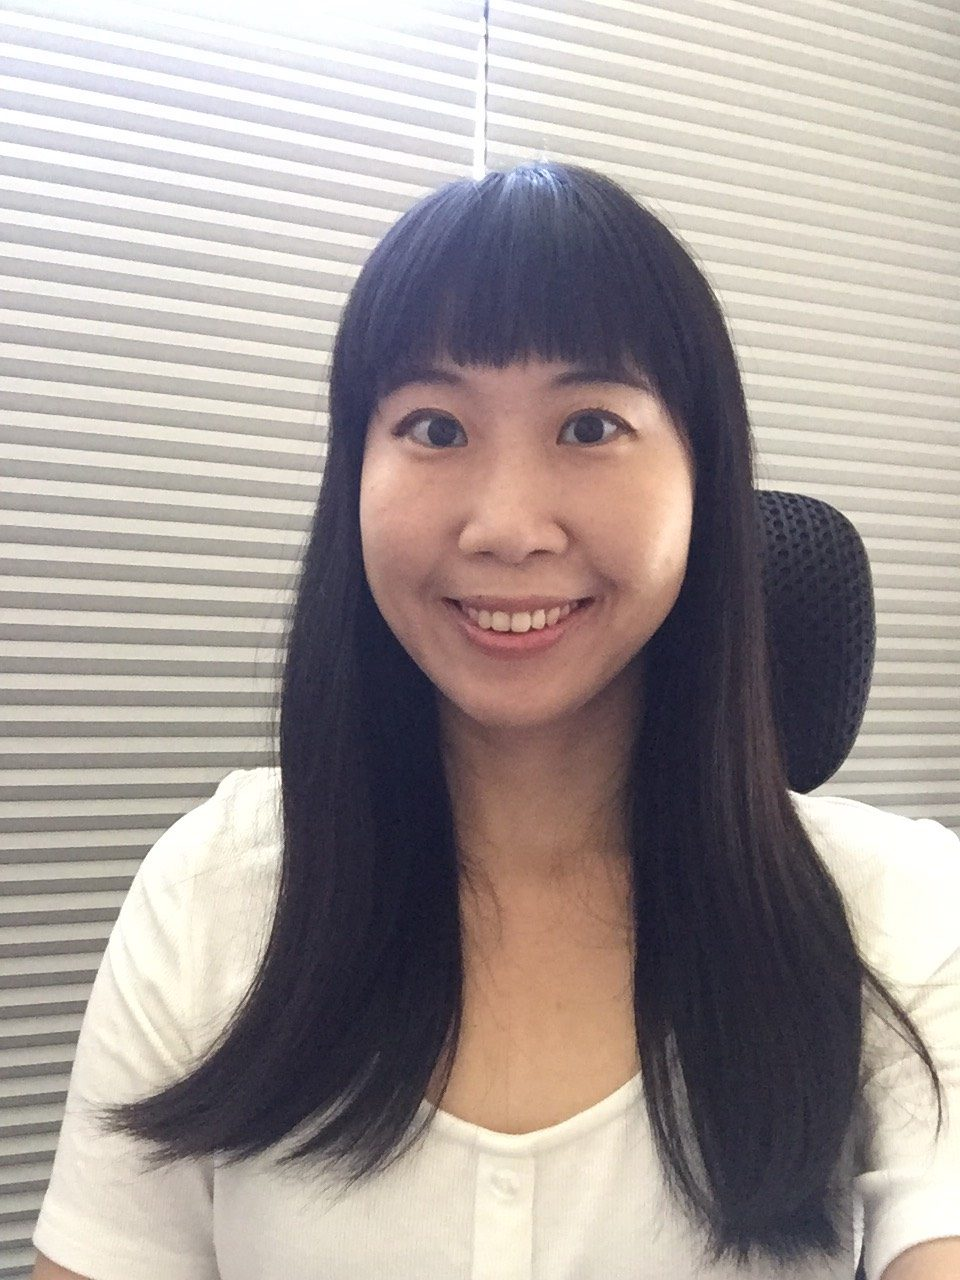 Our community members have their say! MinChien Tsai